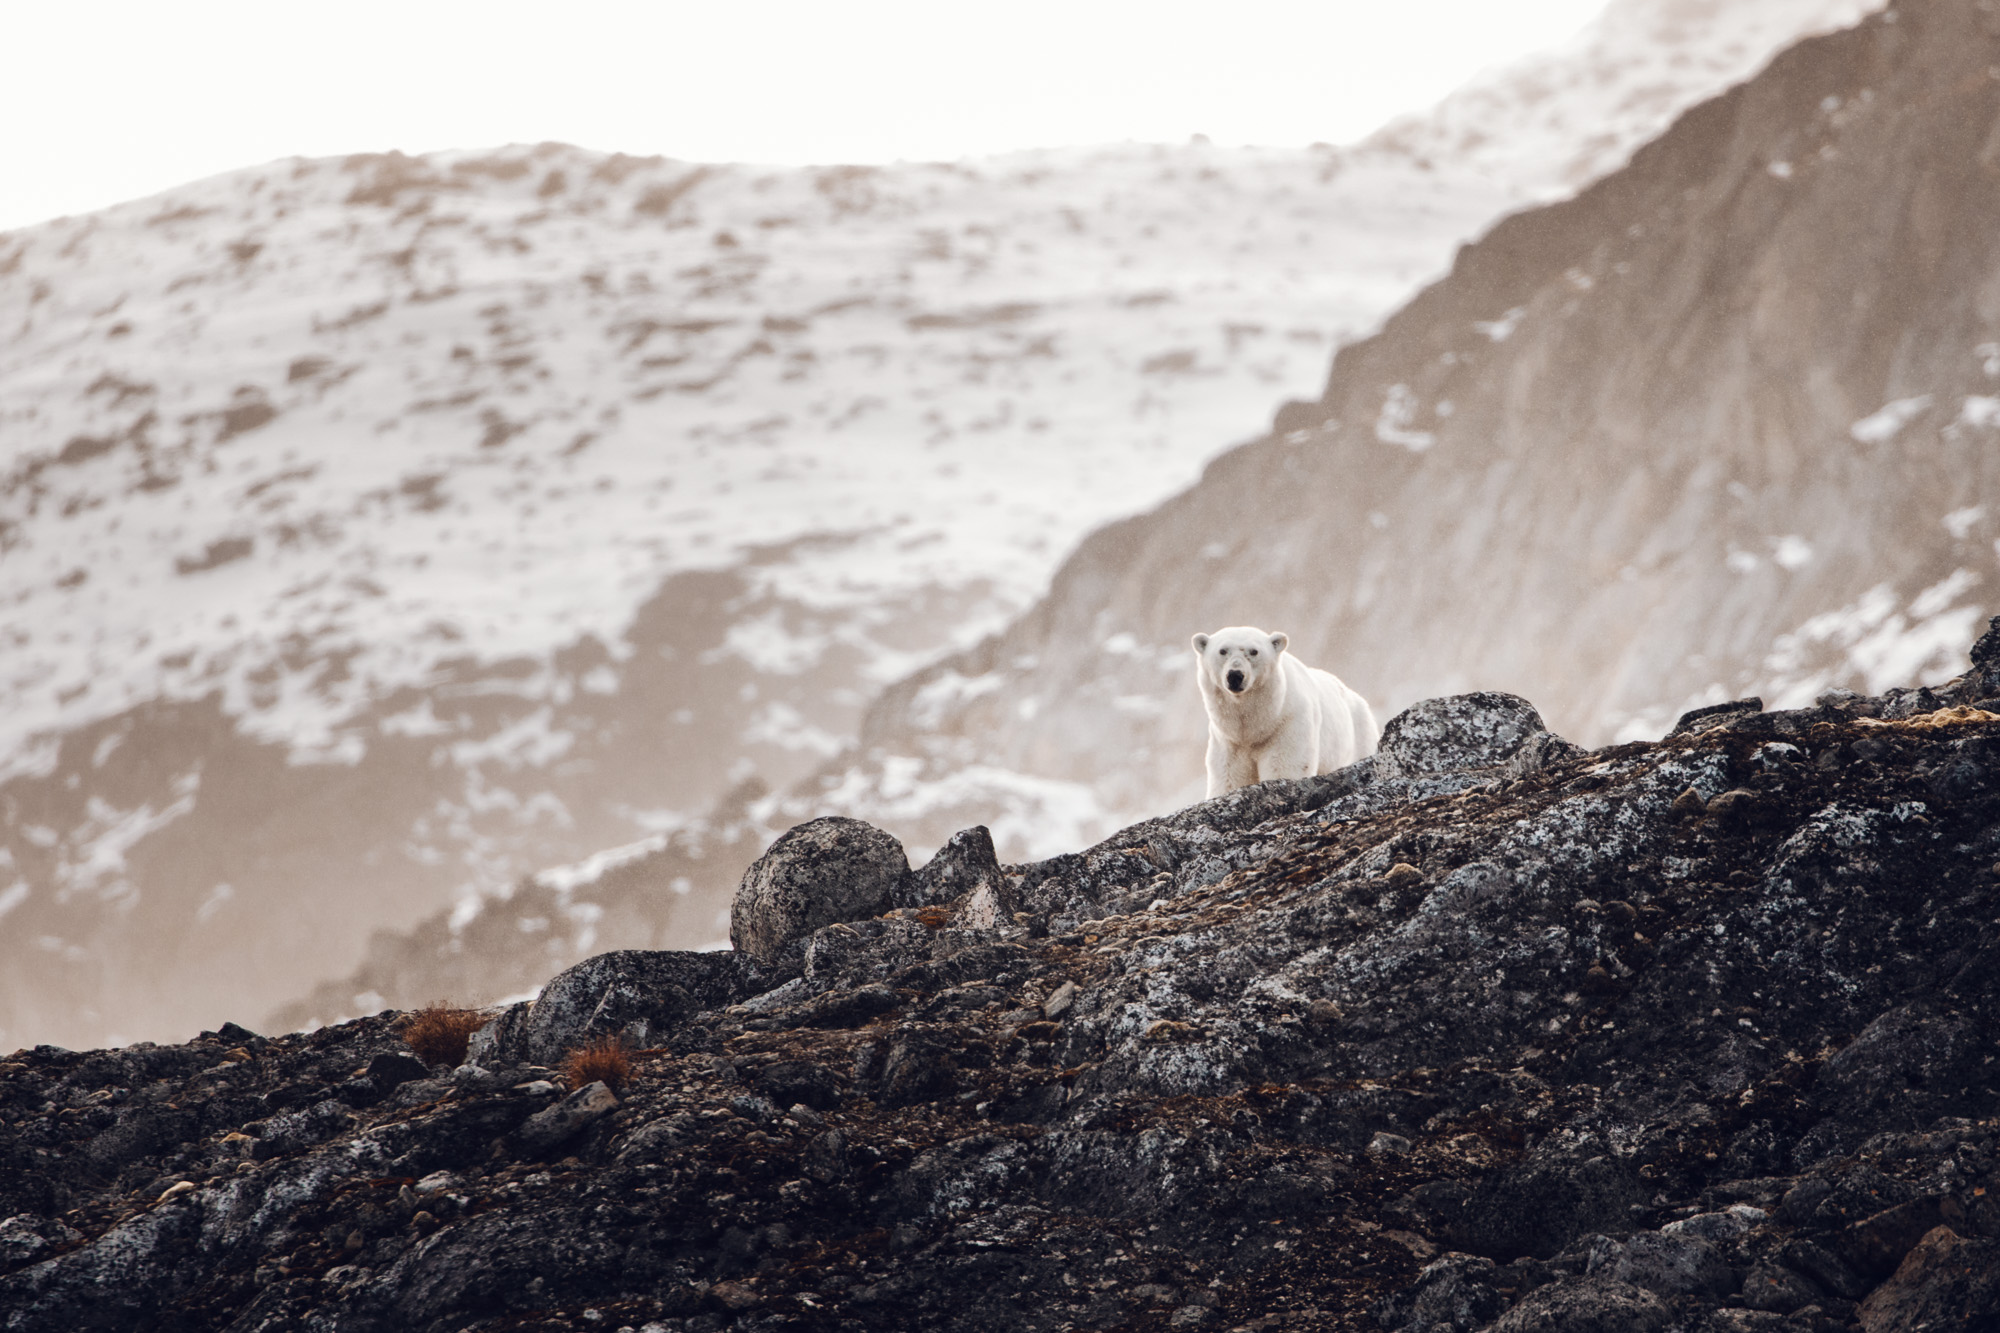 Polar bear in Virgohamna Spitsbergen via Find Us Lost